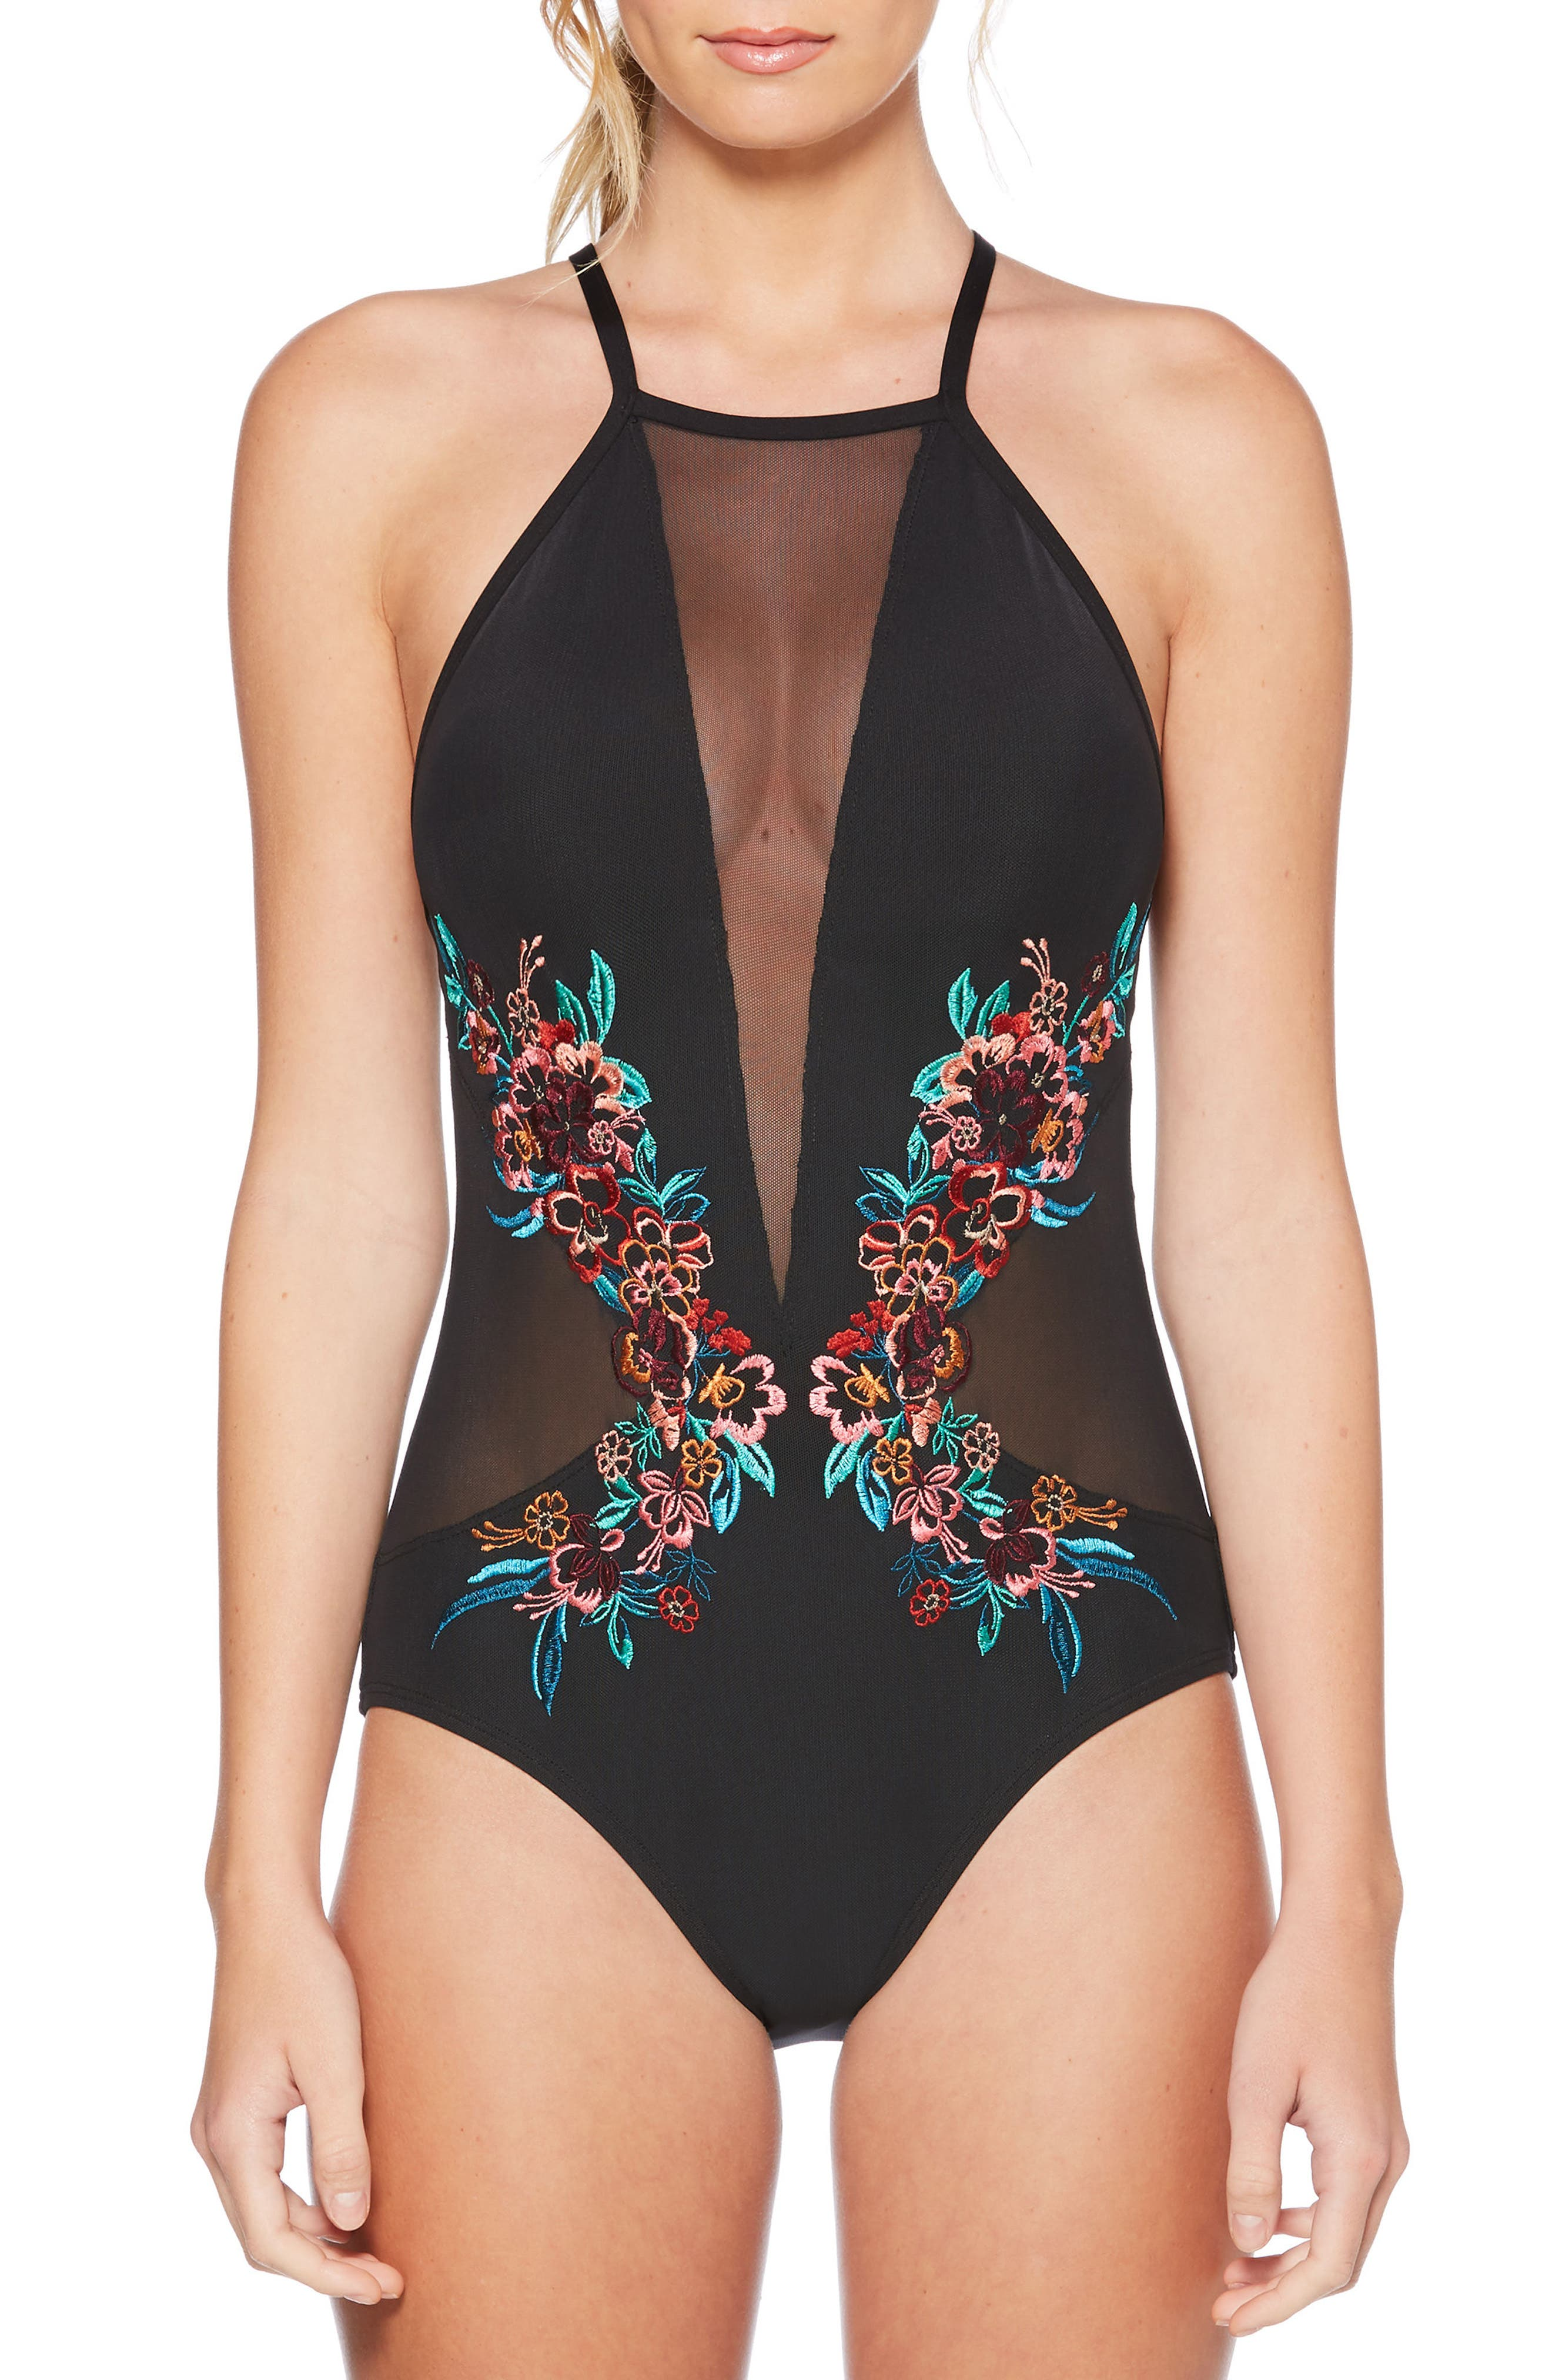 Embroidered Mesh One-Piece Swimsuit,                             Main thumbnail 1, color,                             001